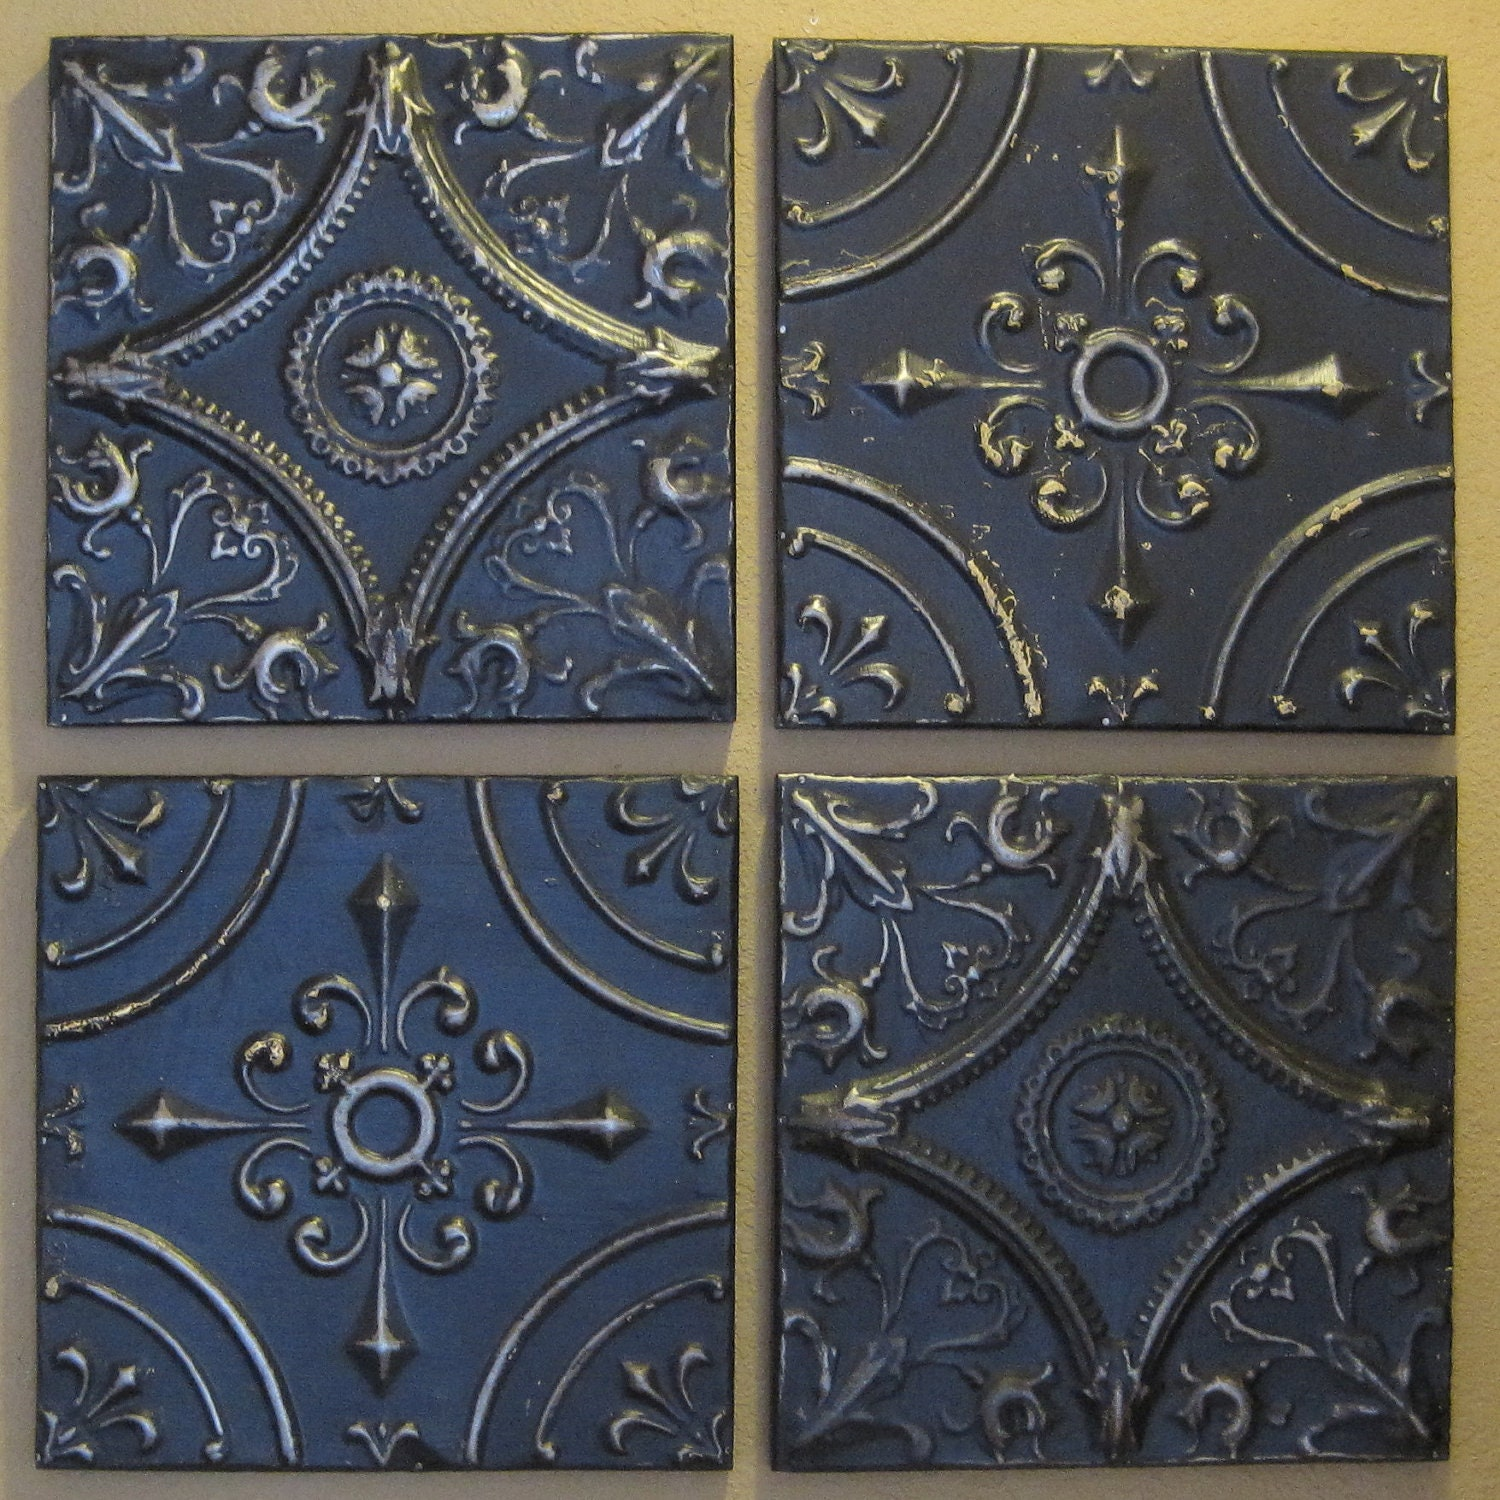 ALL 4 Antique Ceiling Tin Tiles Circa 1900 Each tile